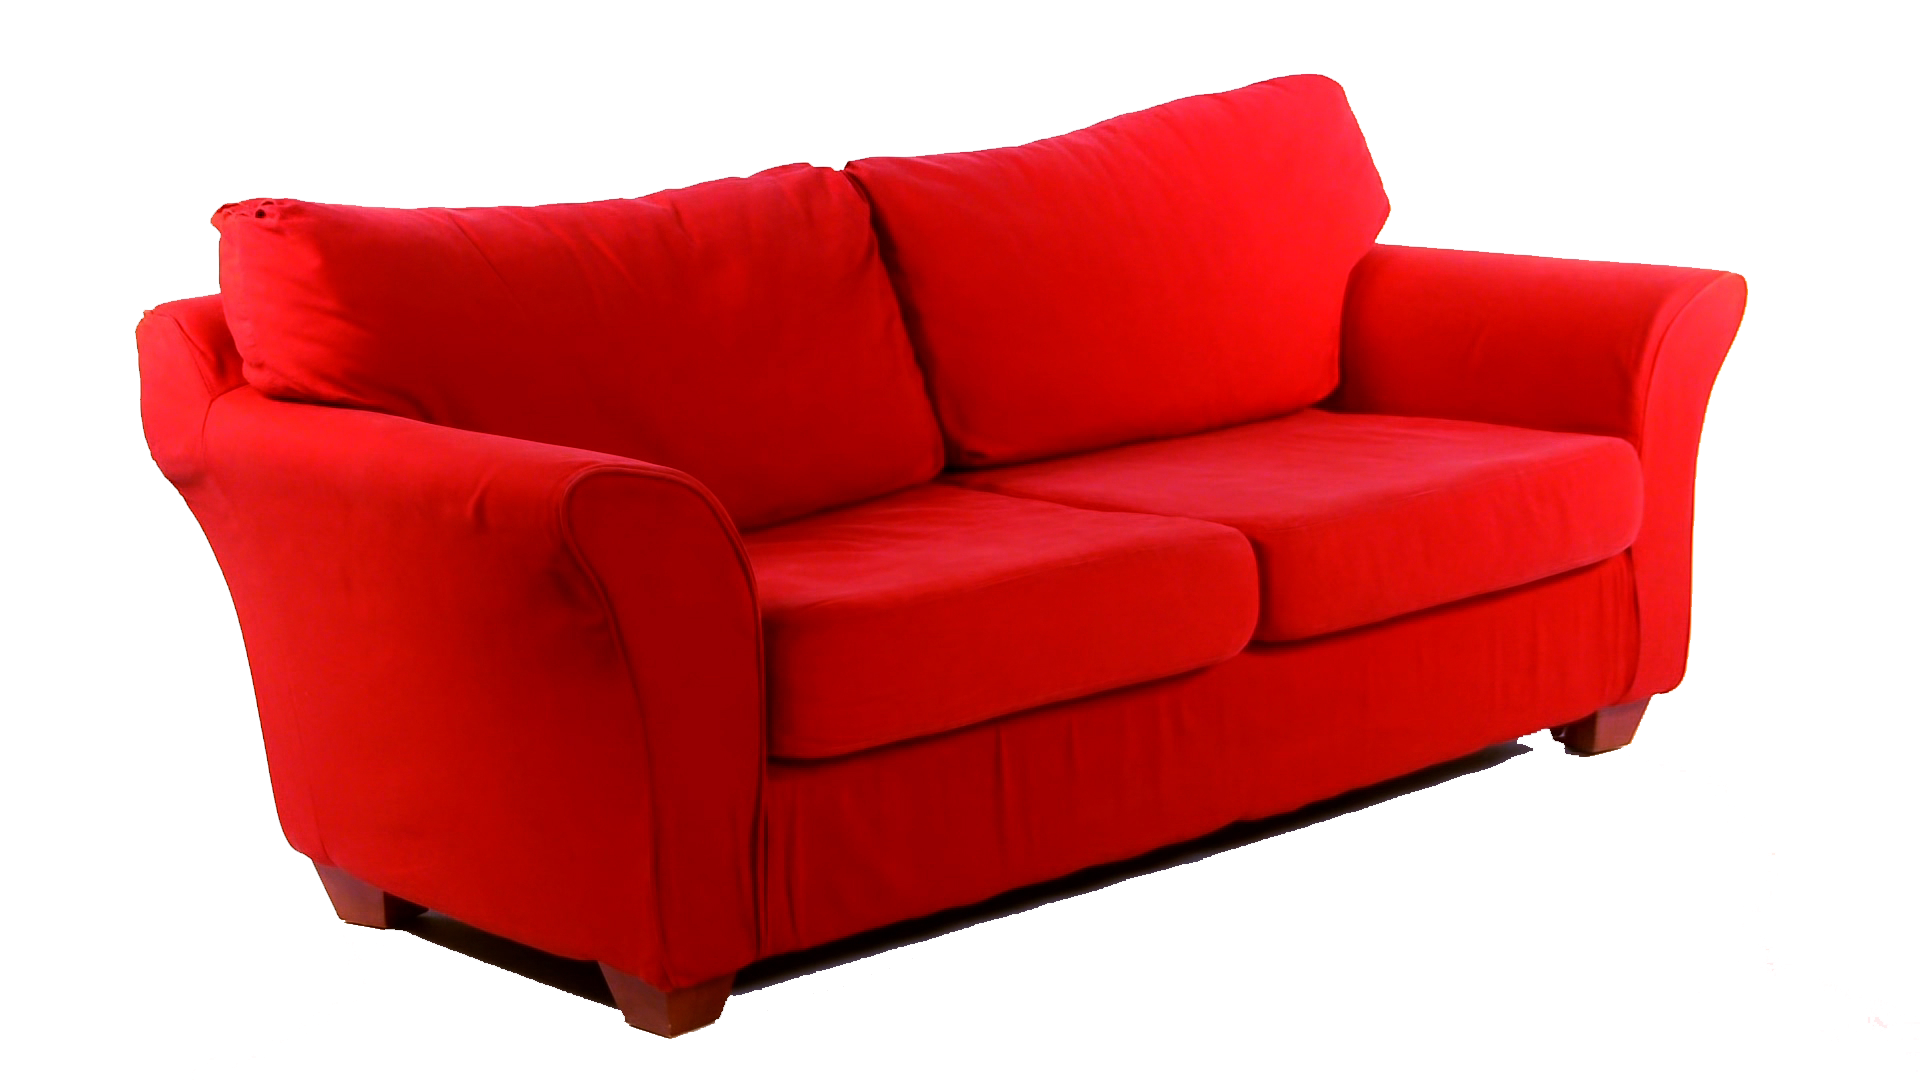 This red couch will be making more than a dozen trips around the